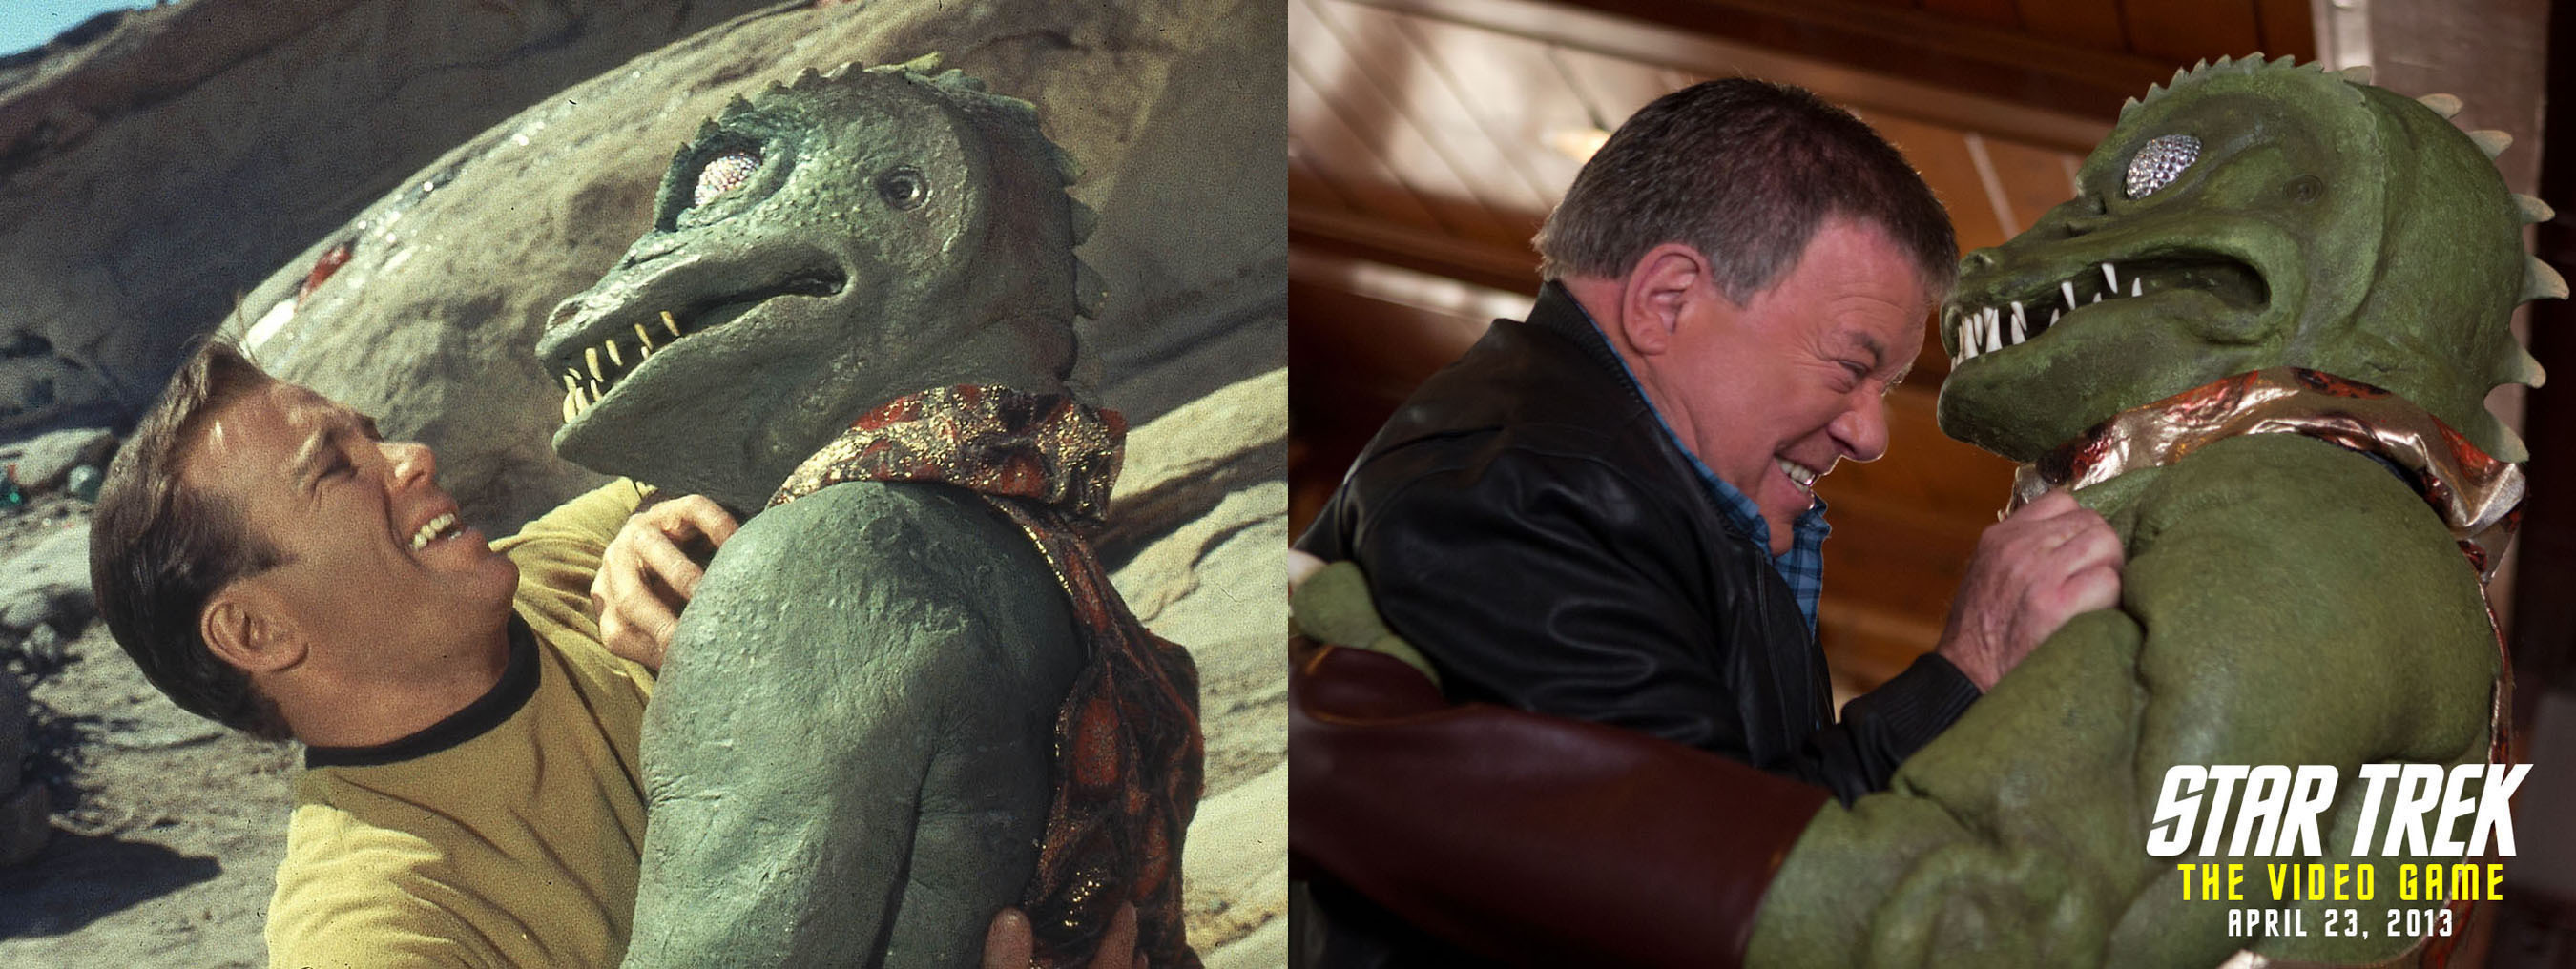 """William Shatner and his Gorn co-star in the classic Star Trek episode """"Arena"""" (1967) and now (2013). (PRNewsFoto/Paramount Pictures Corporation) (PRNewsFoto/PARAMOUNT PICTURES CORPORATION)"""